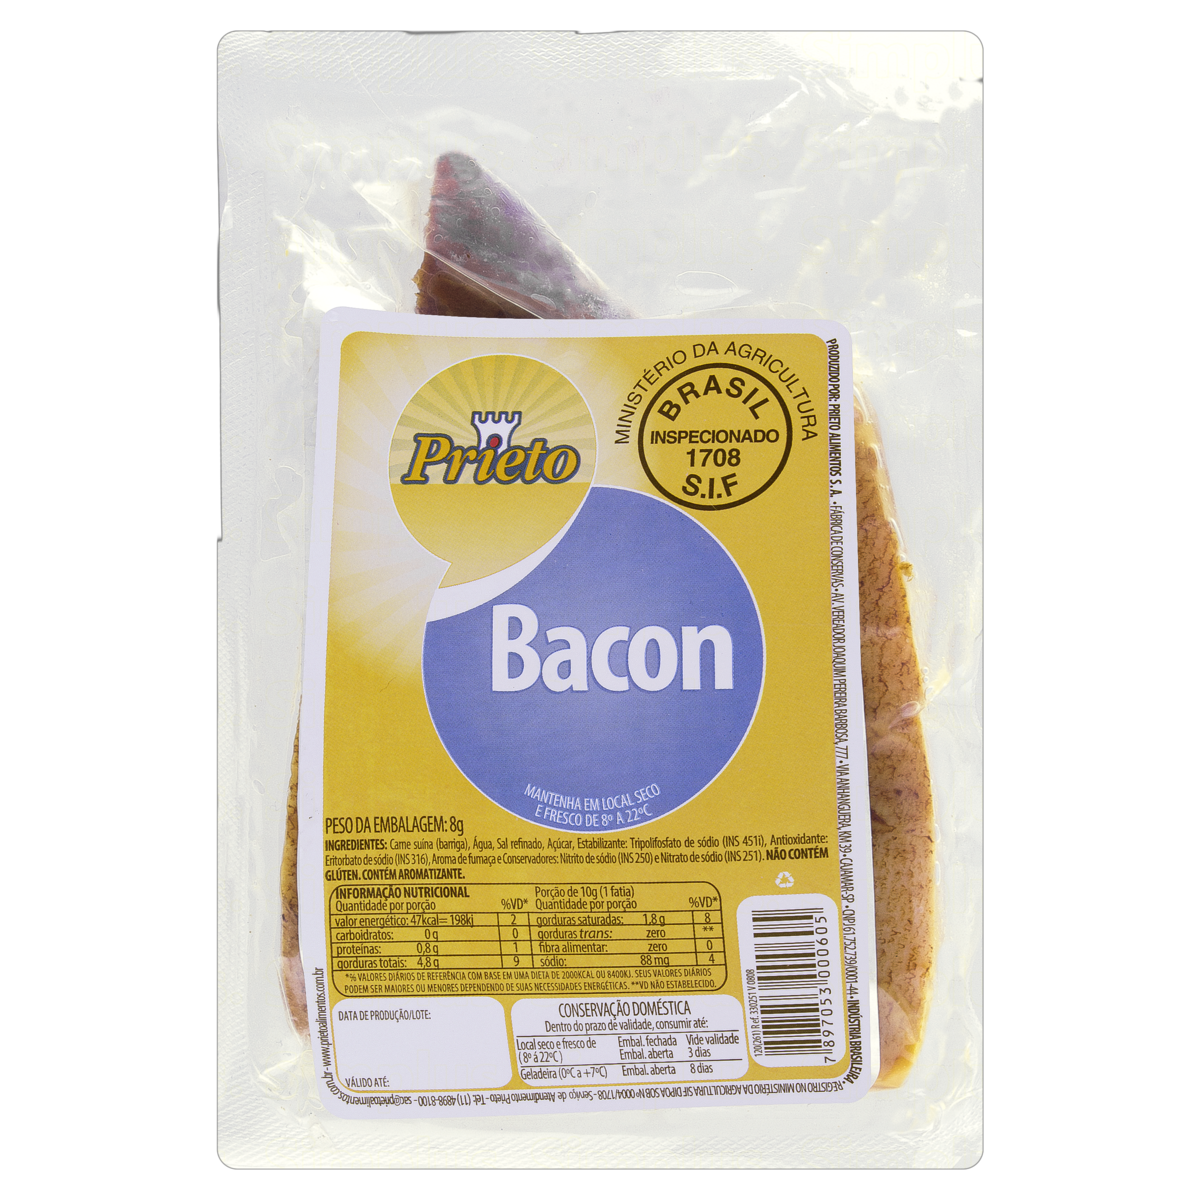 7897053000605 - BACON PRIETO